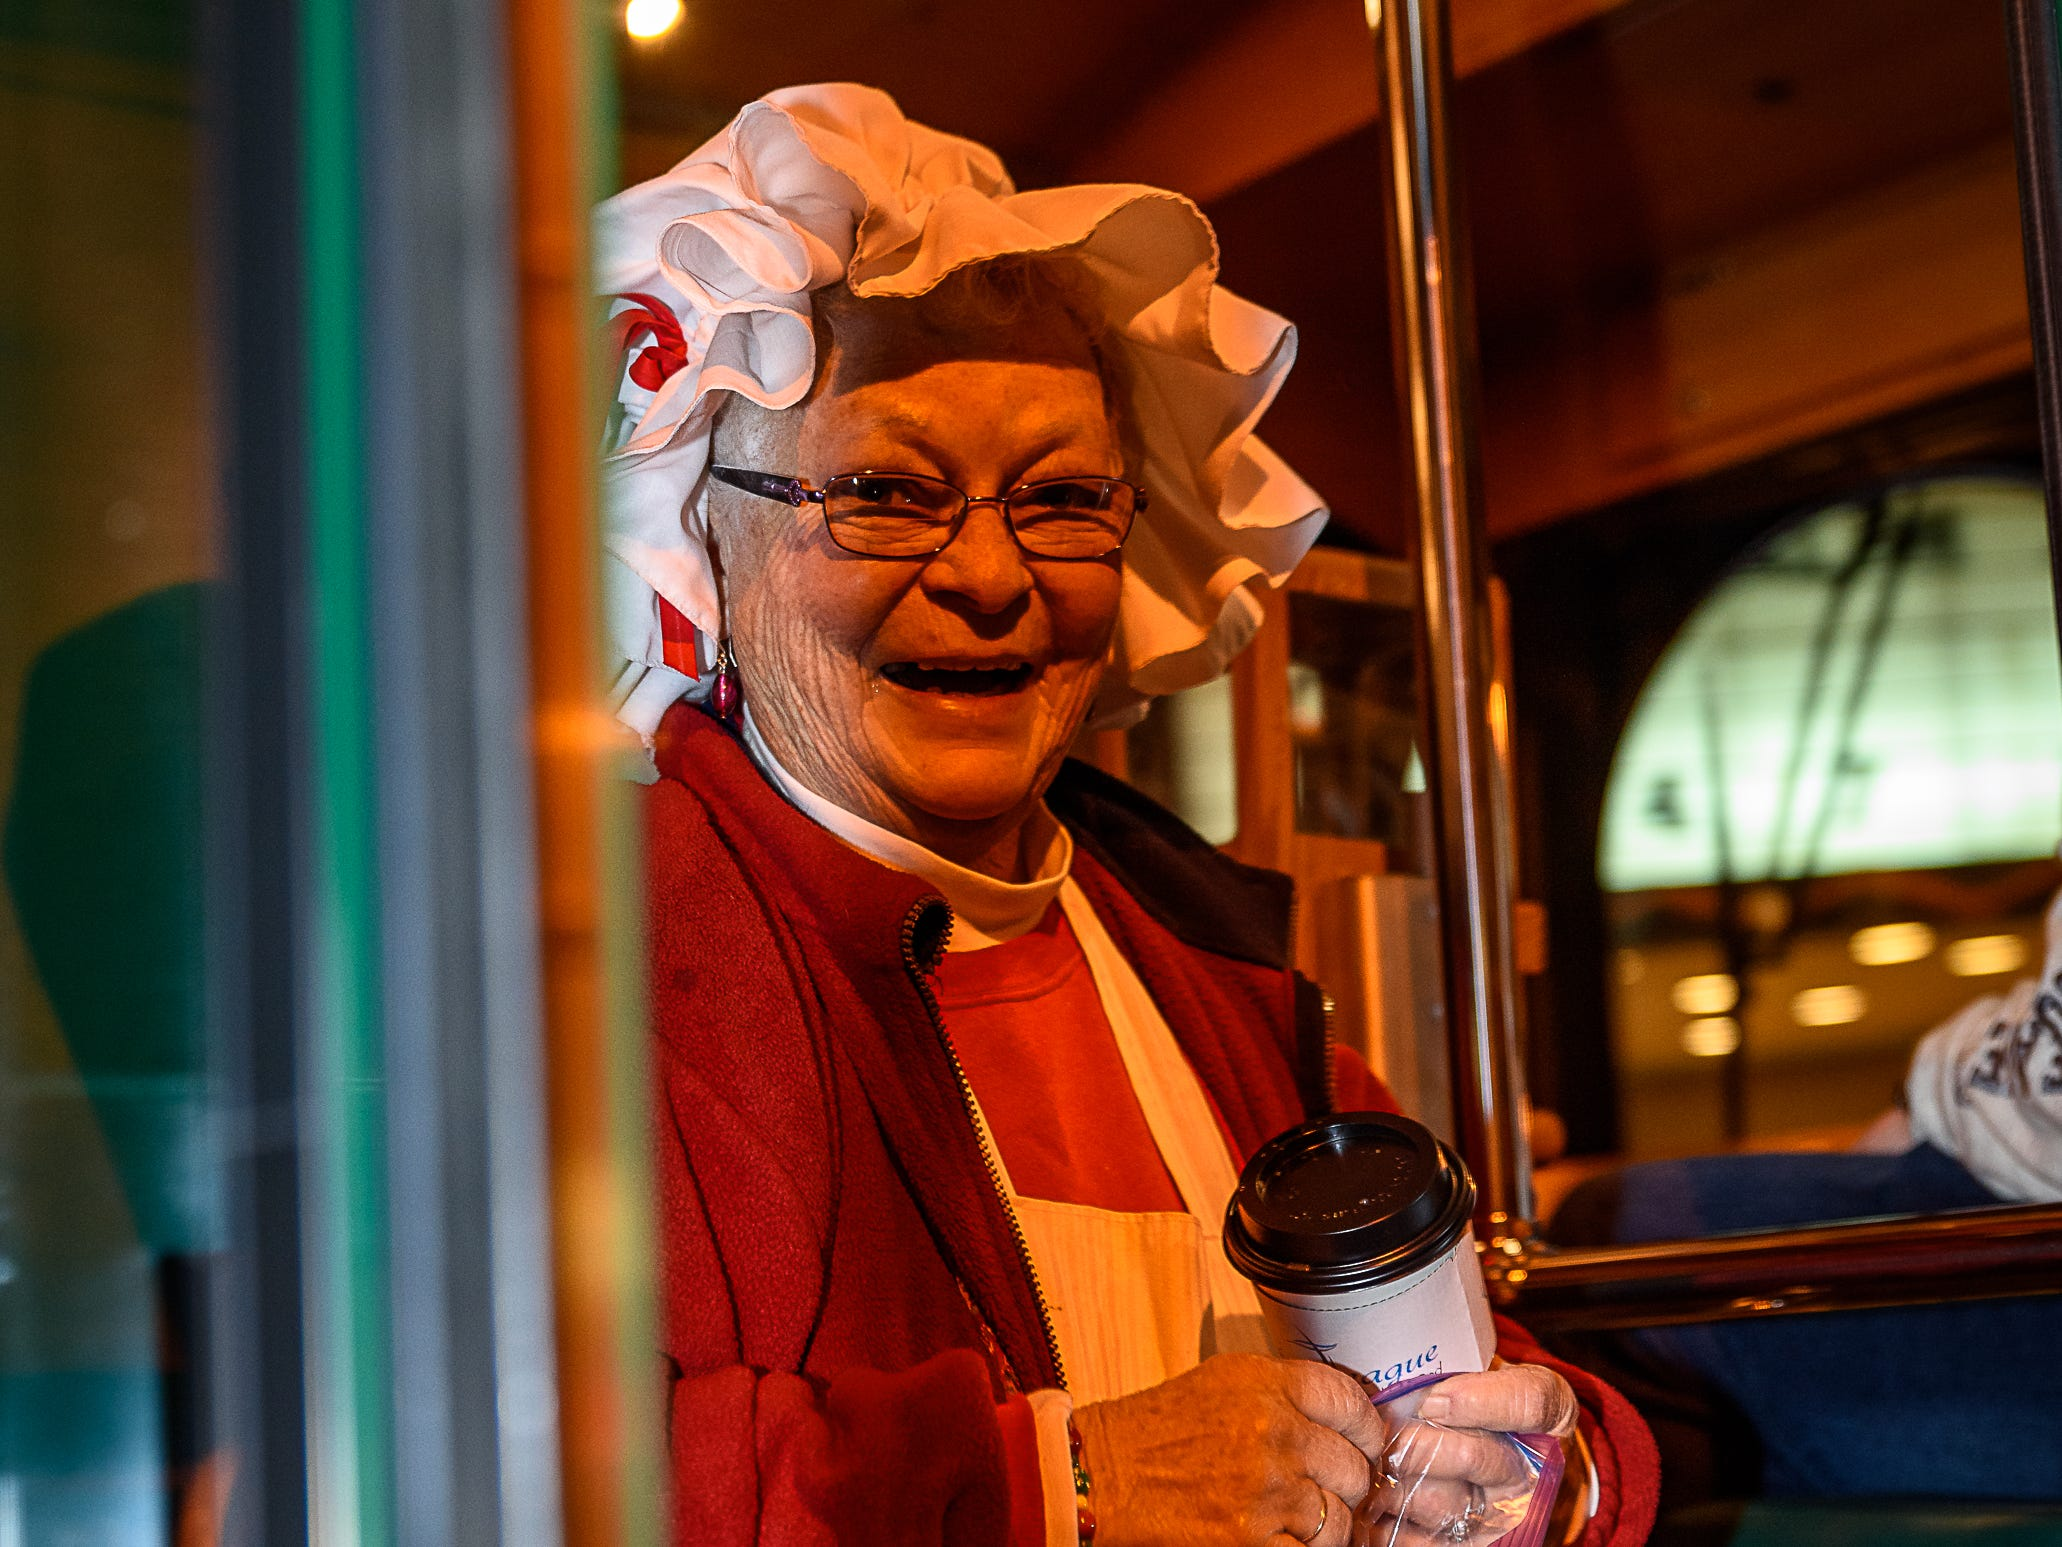 Mrs Claus hands out treats from the door of the Chincoteague Trolley during the Christmas parade.